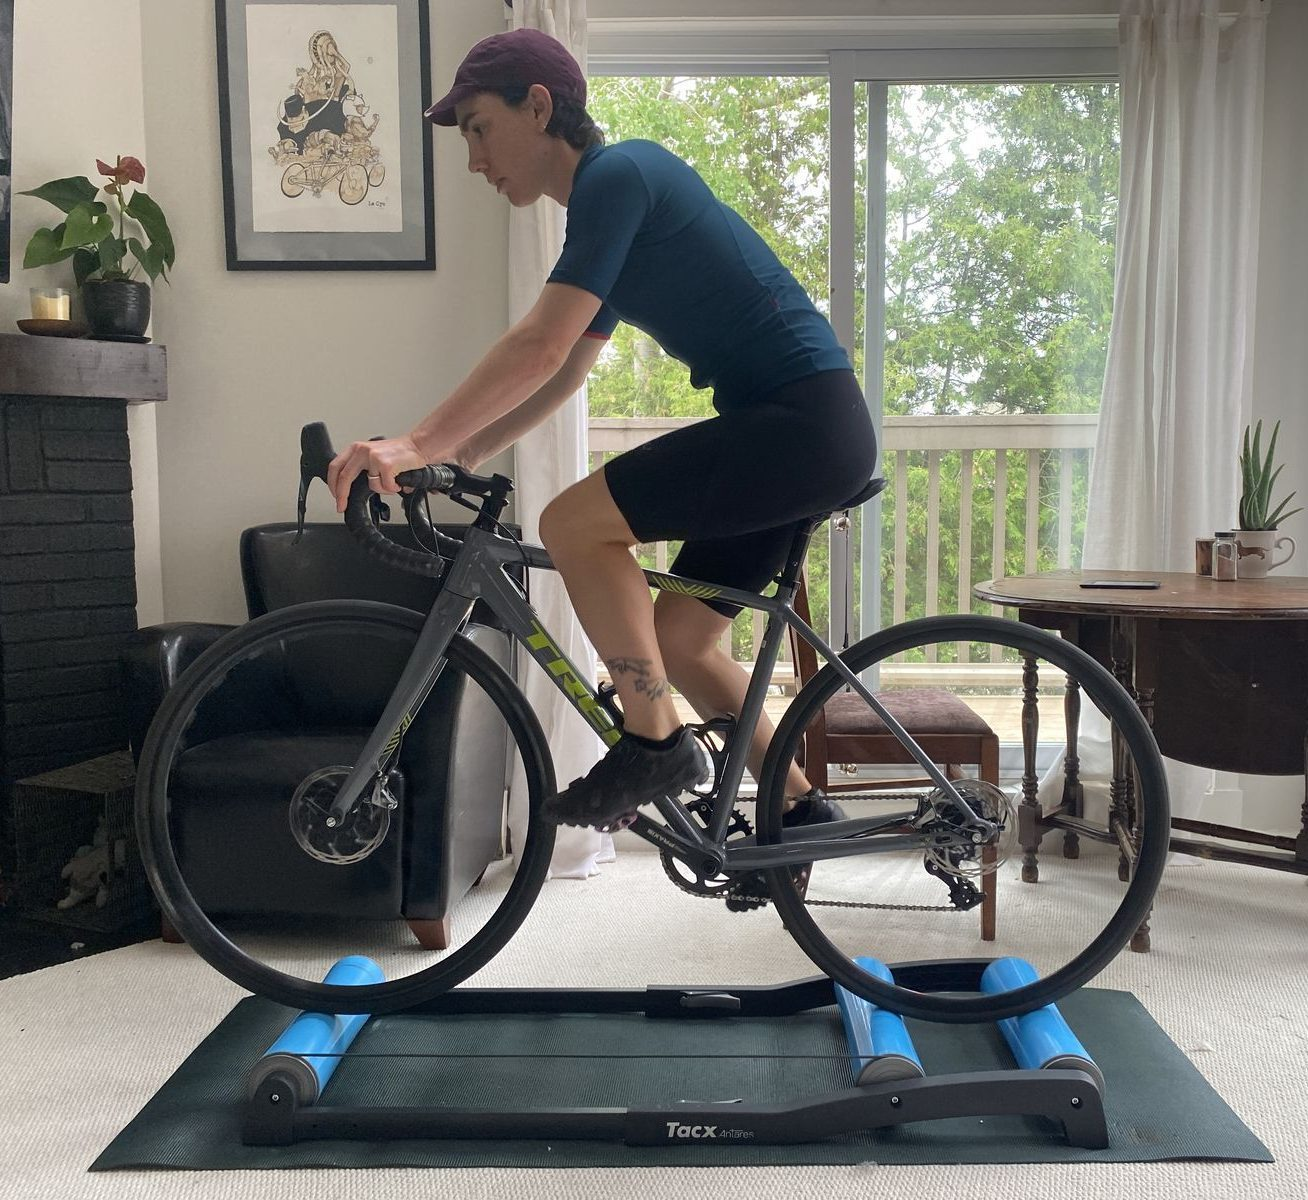 TACX Antares rollers for indoor training